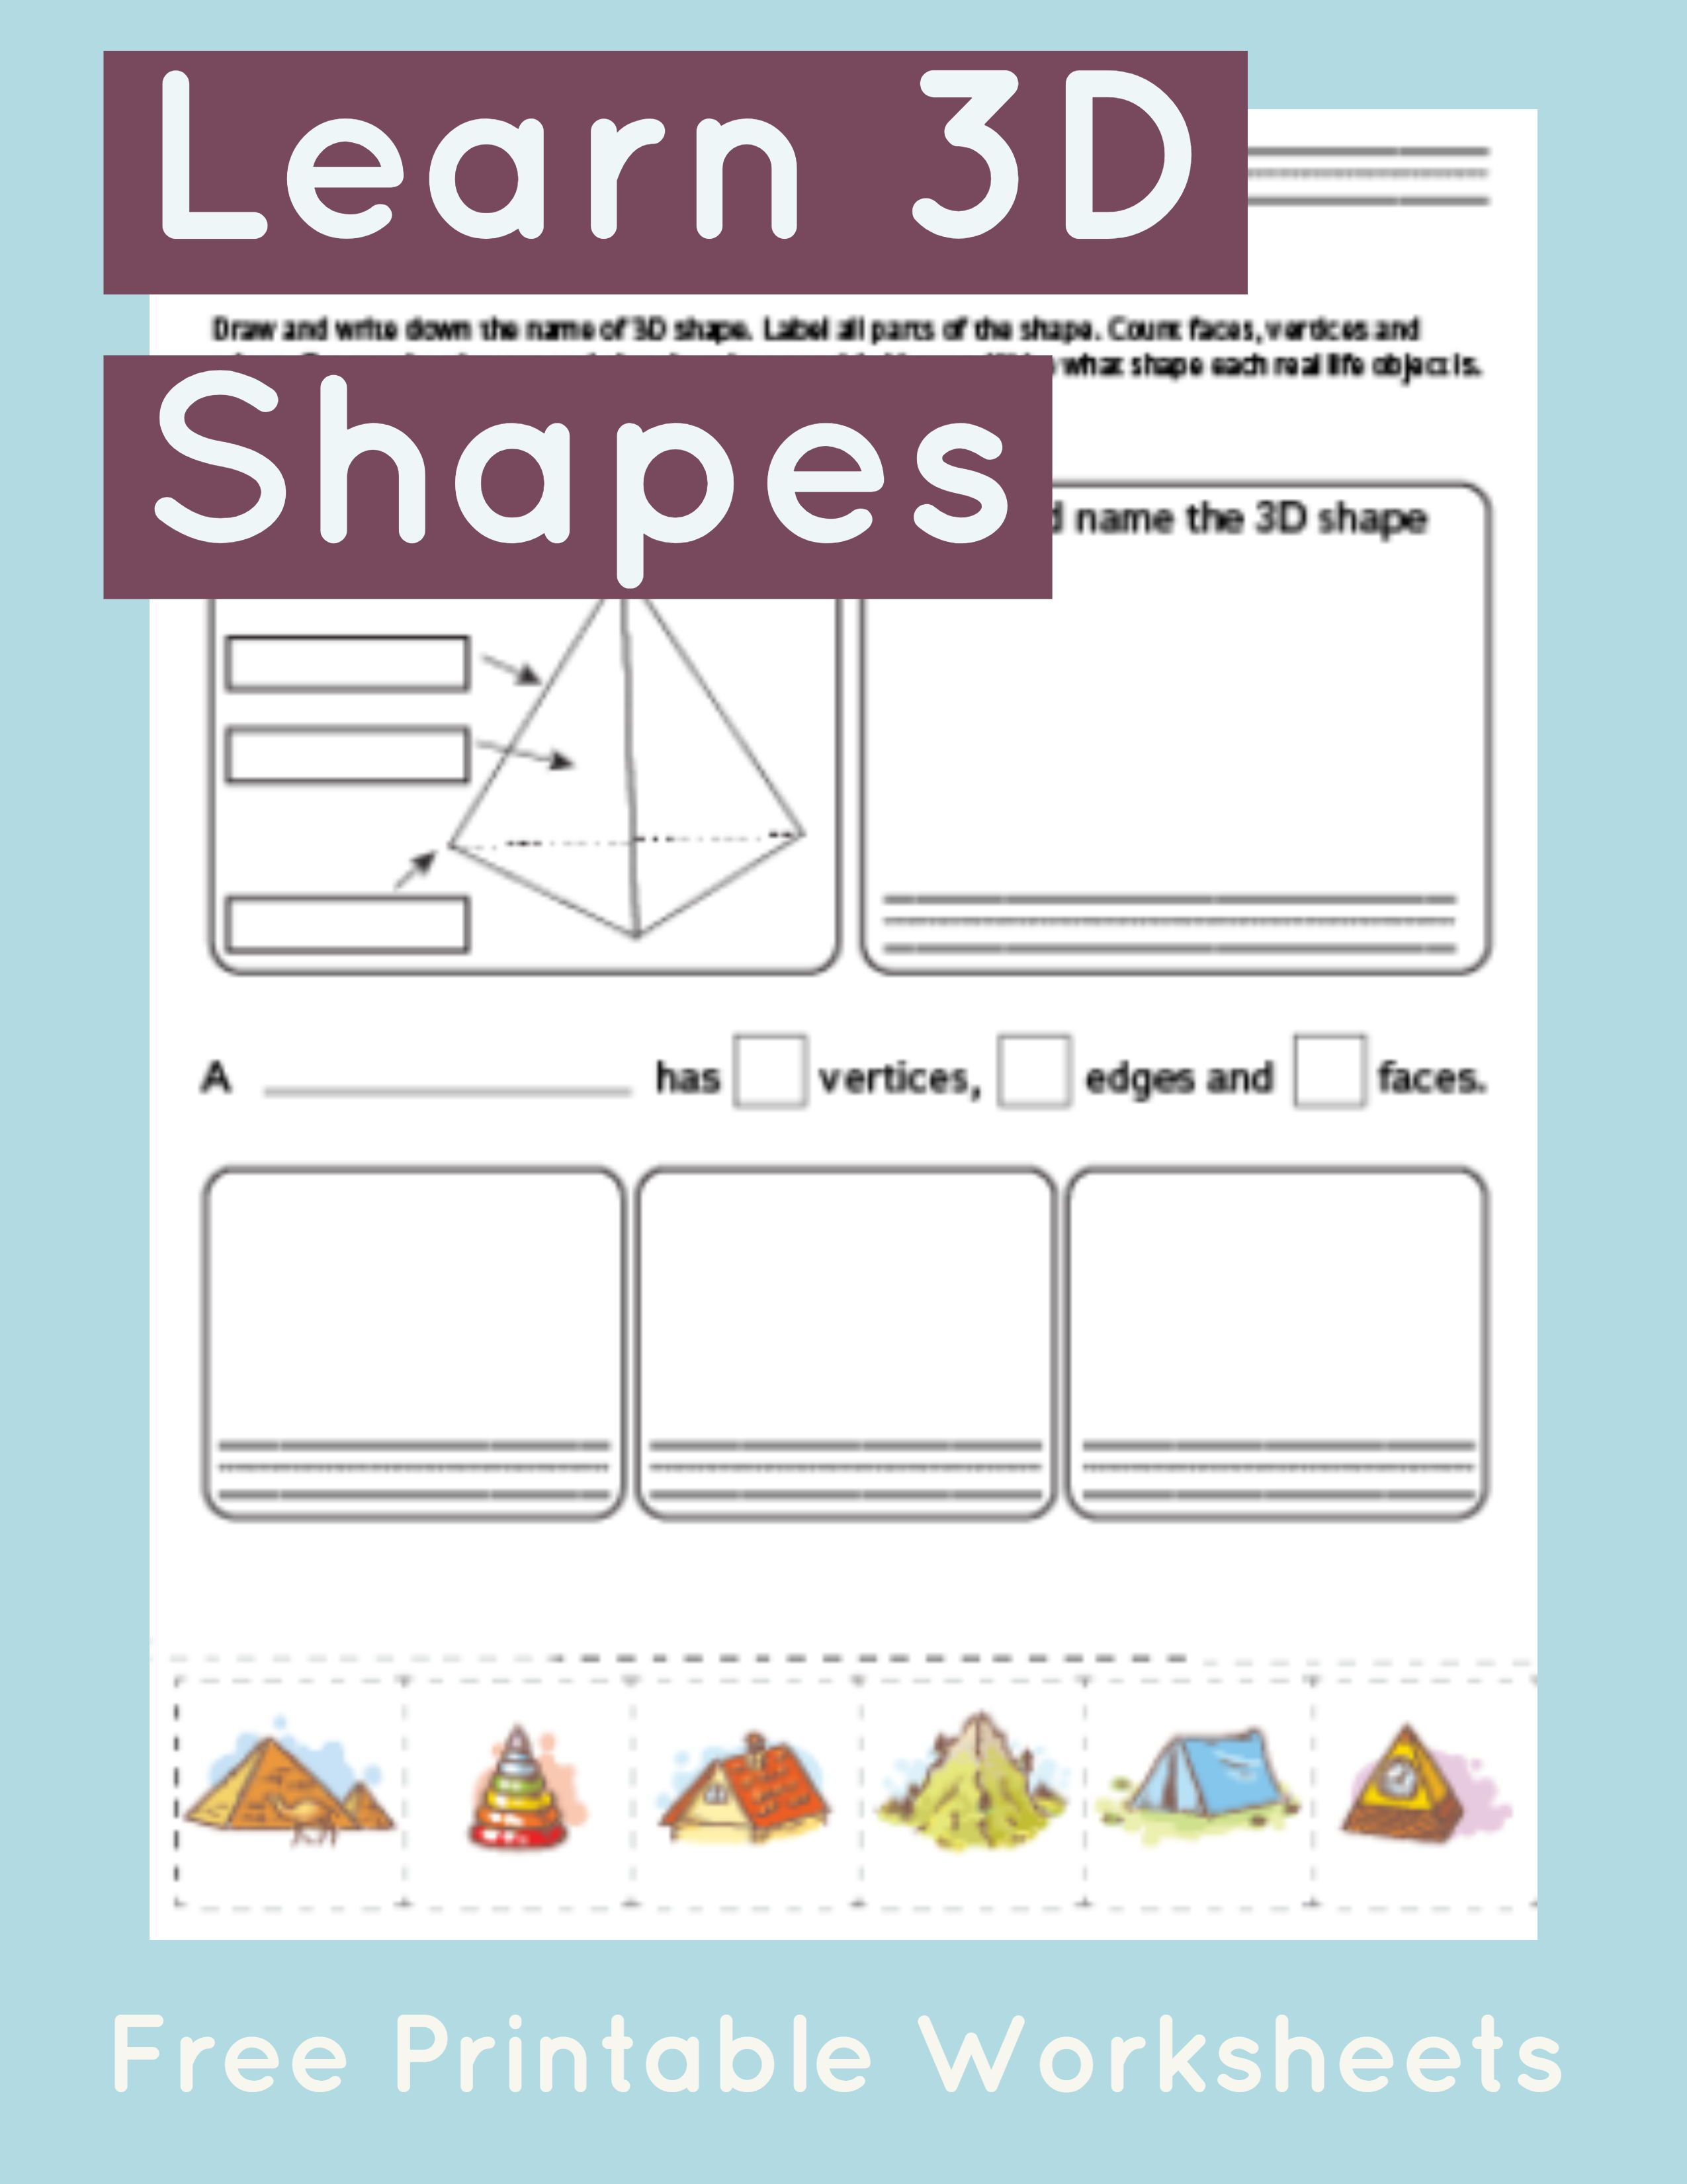 hight resolution of 3d Shapes Faces Edges Vertices Worksheet   Printable Worksheets and  Activities for Teachers